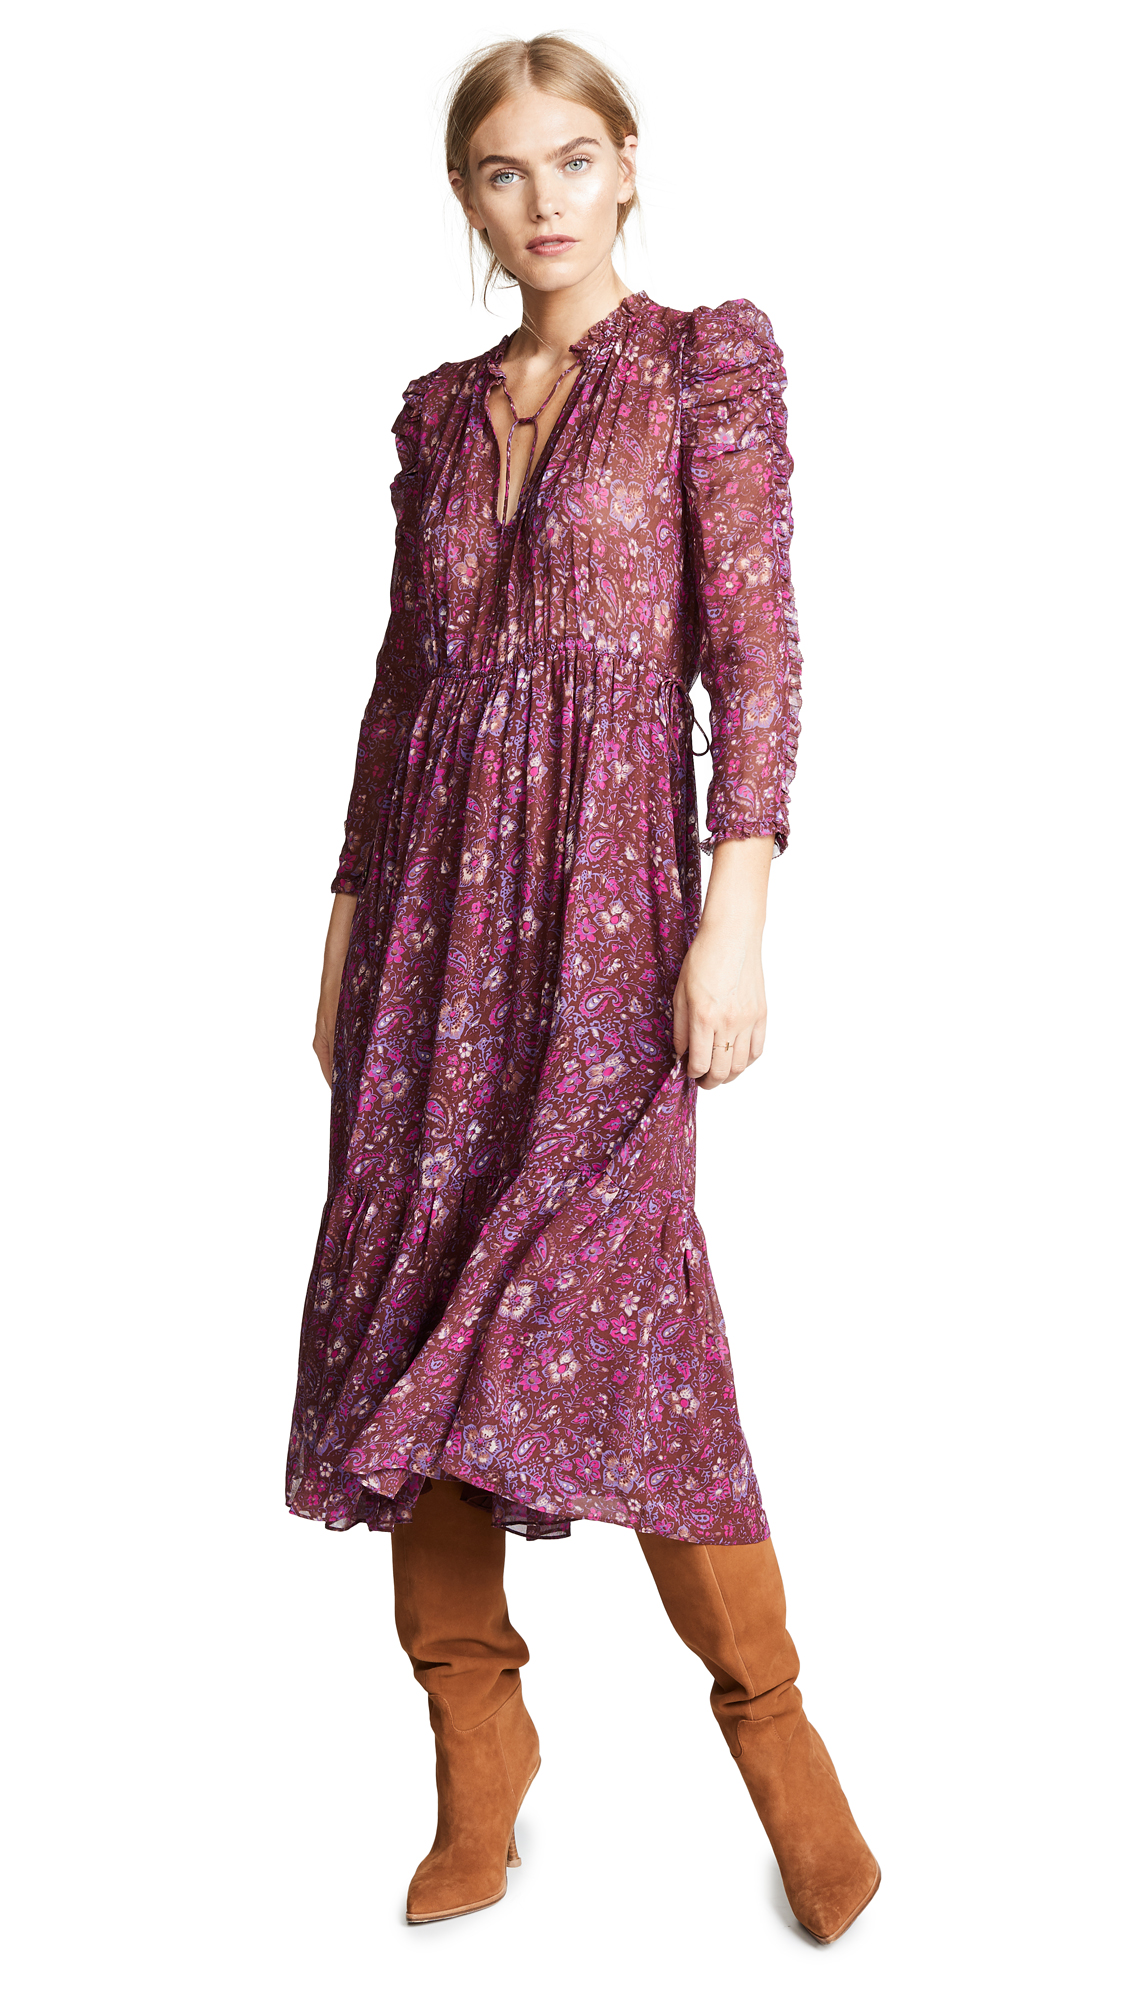 Ulla Johnson Izar Dress In Sumac